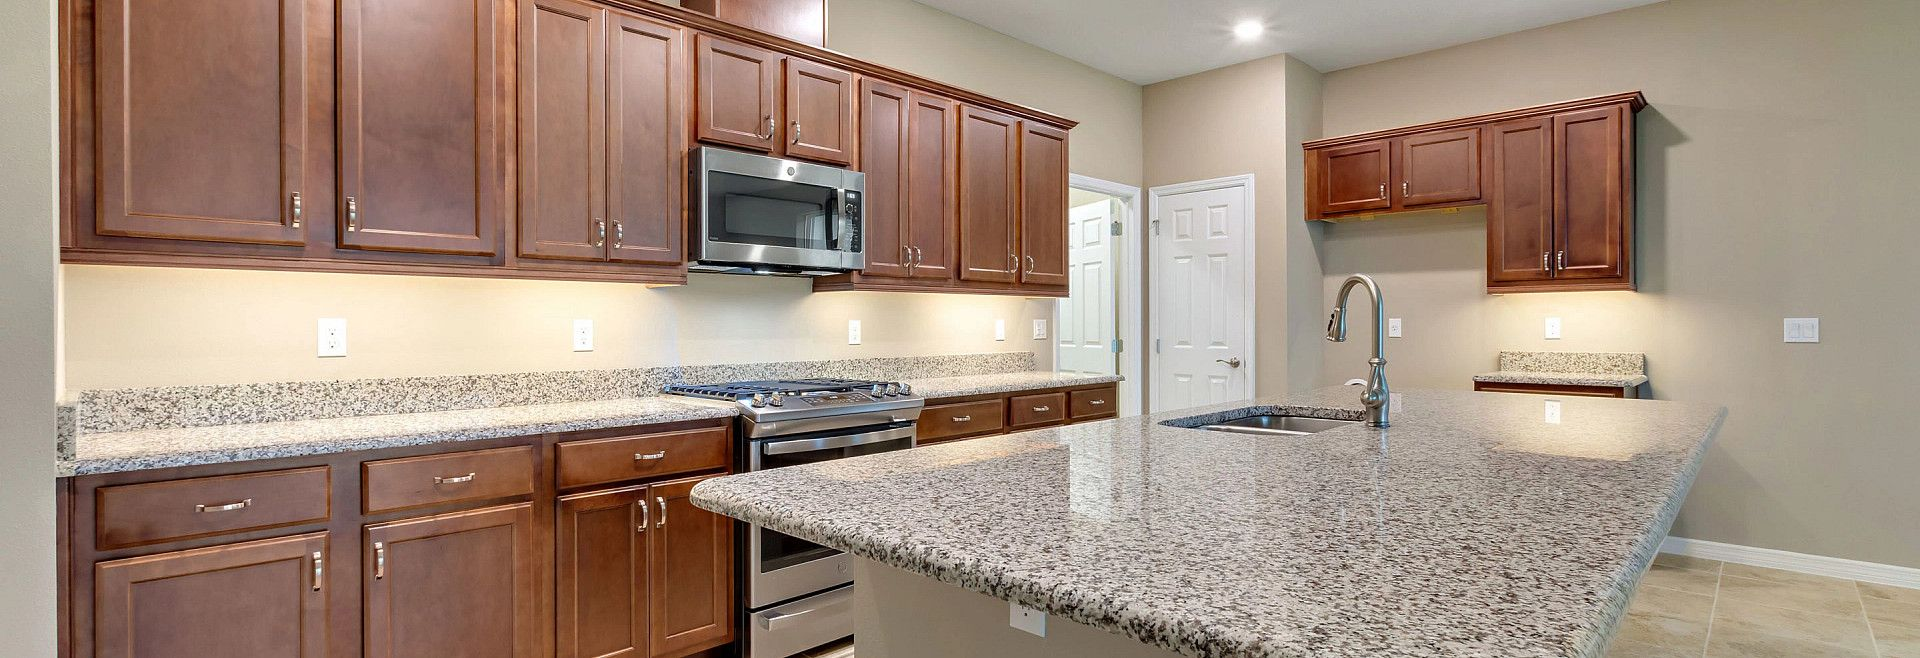 Kitchen featured in the Affirm By Shea Homes - Trilogy in Orlando, FL